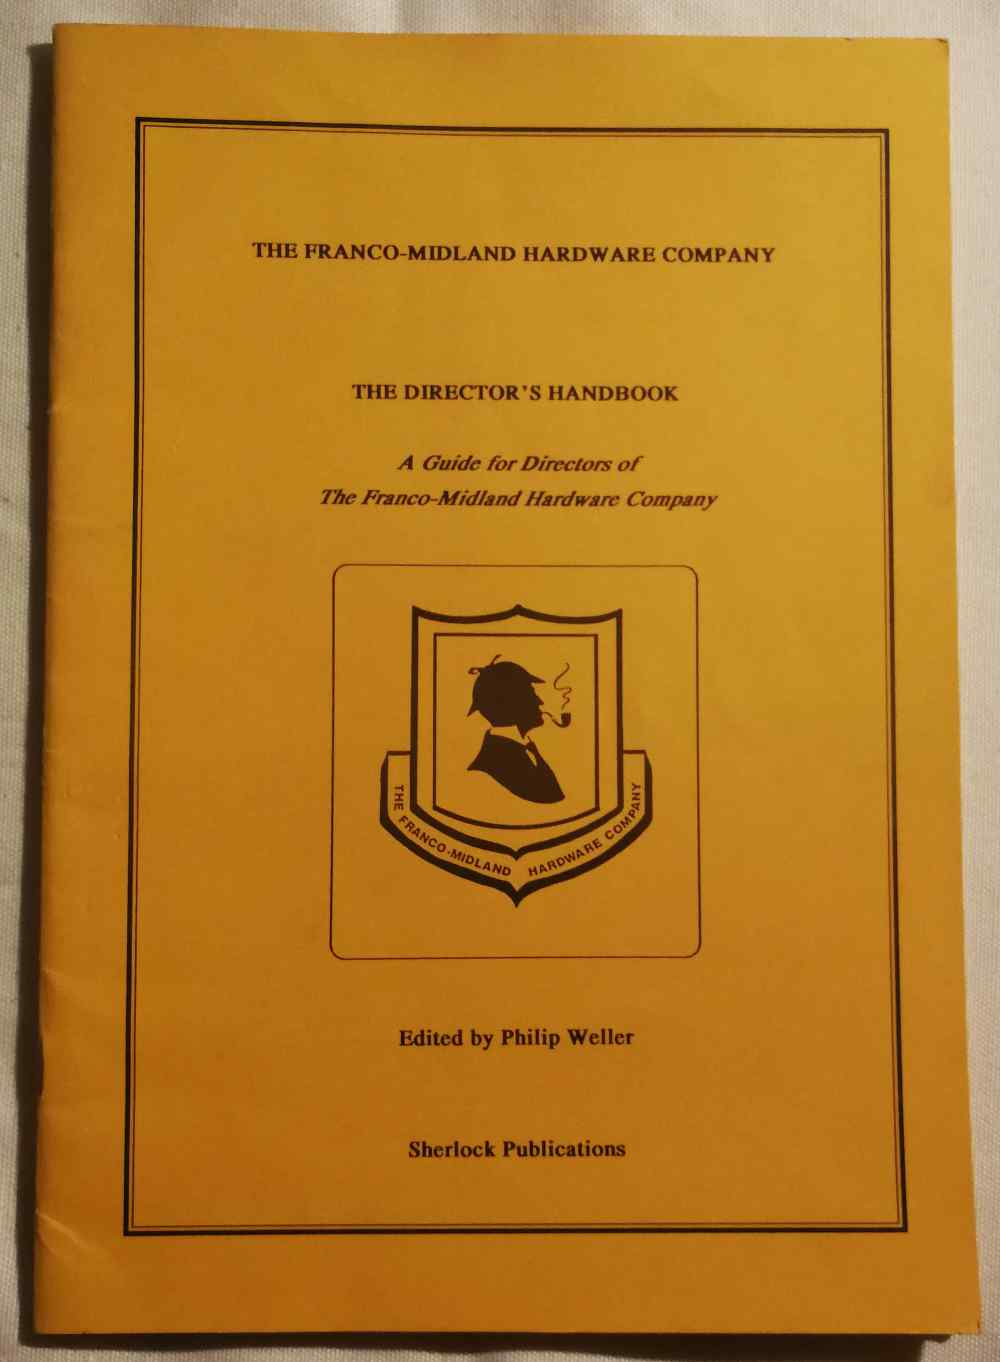 The director's handbook : a guide for directors of the Franco-Midland Hardware Company